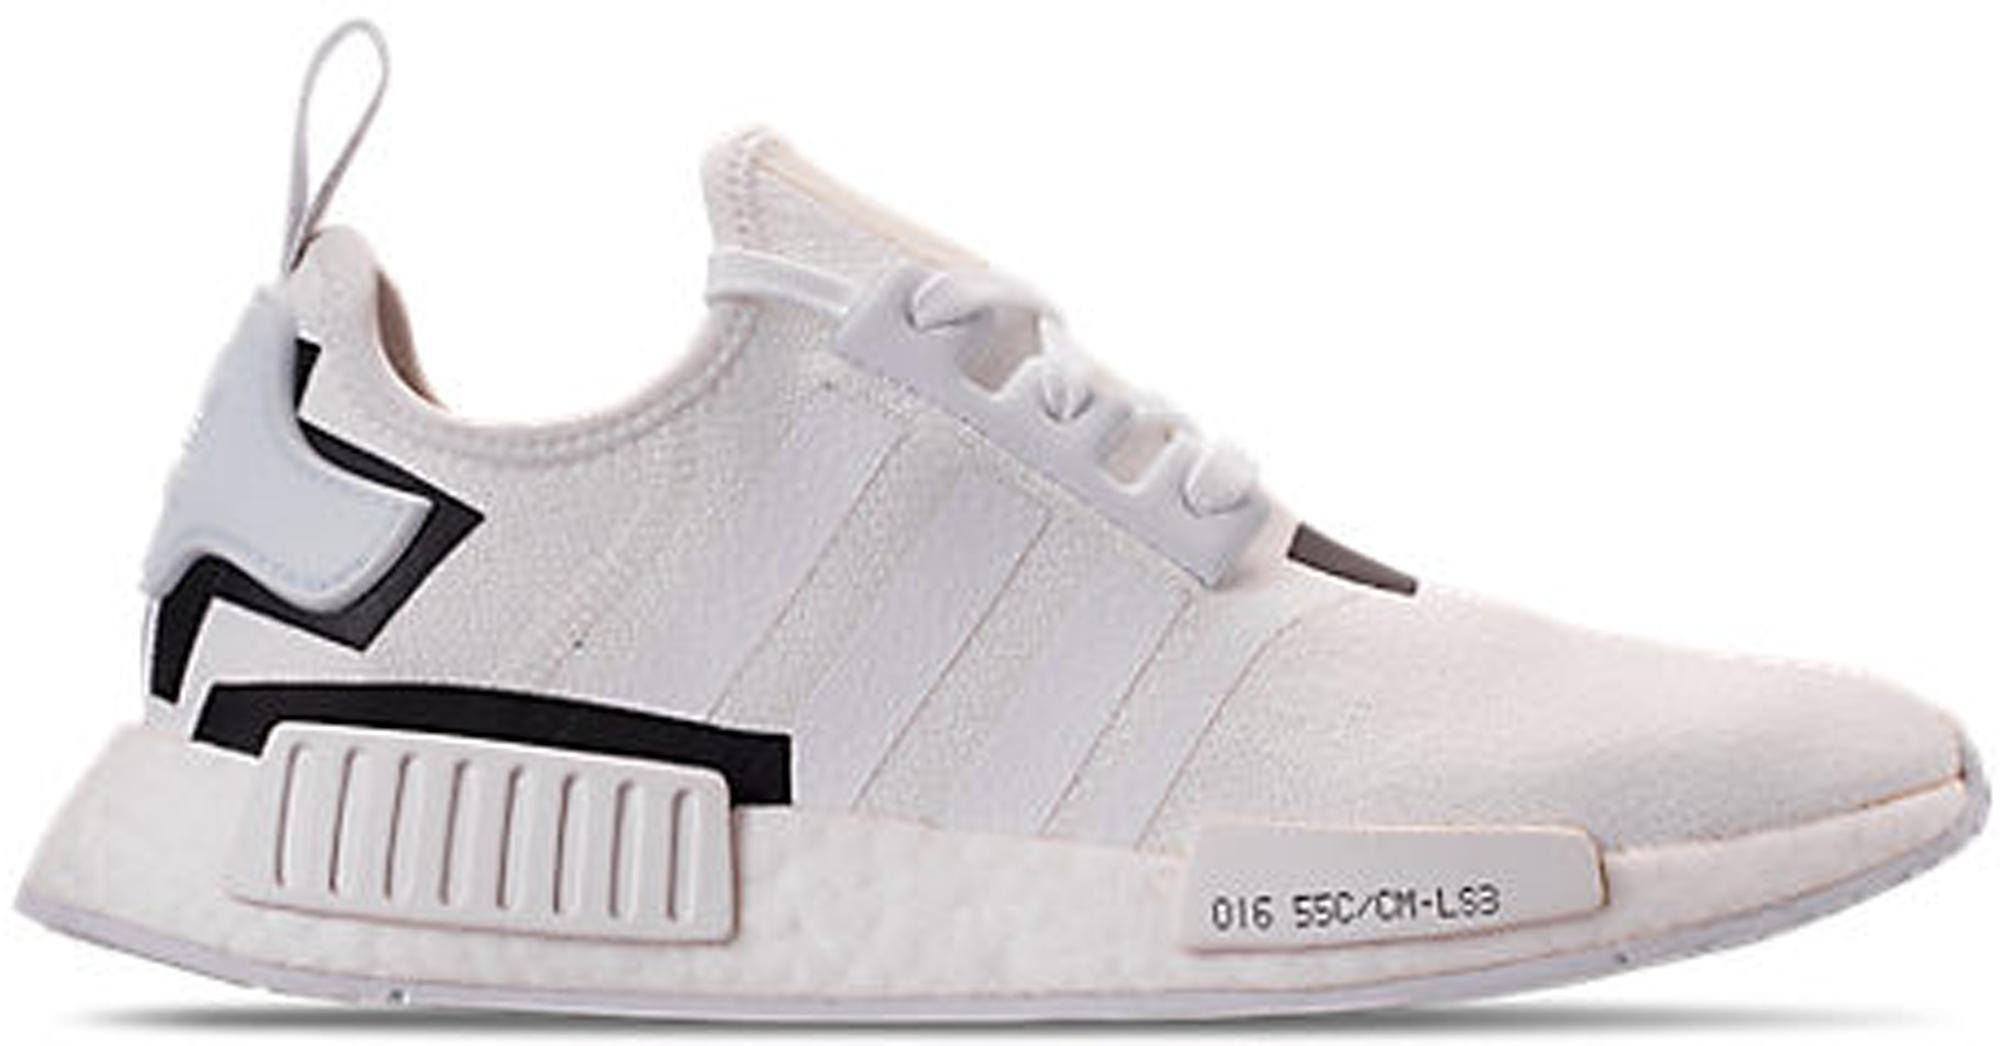 Adidas Nmd R1 Colorblock White Black For Men Lyst